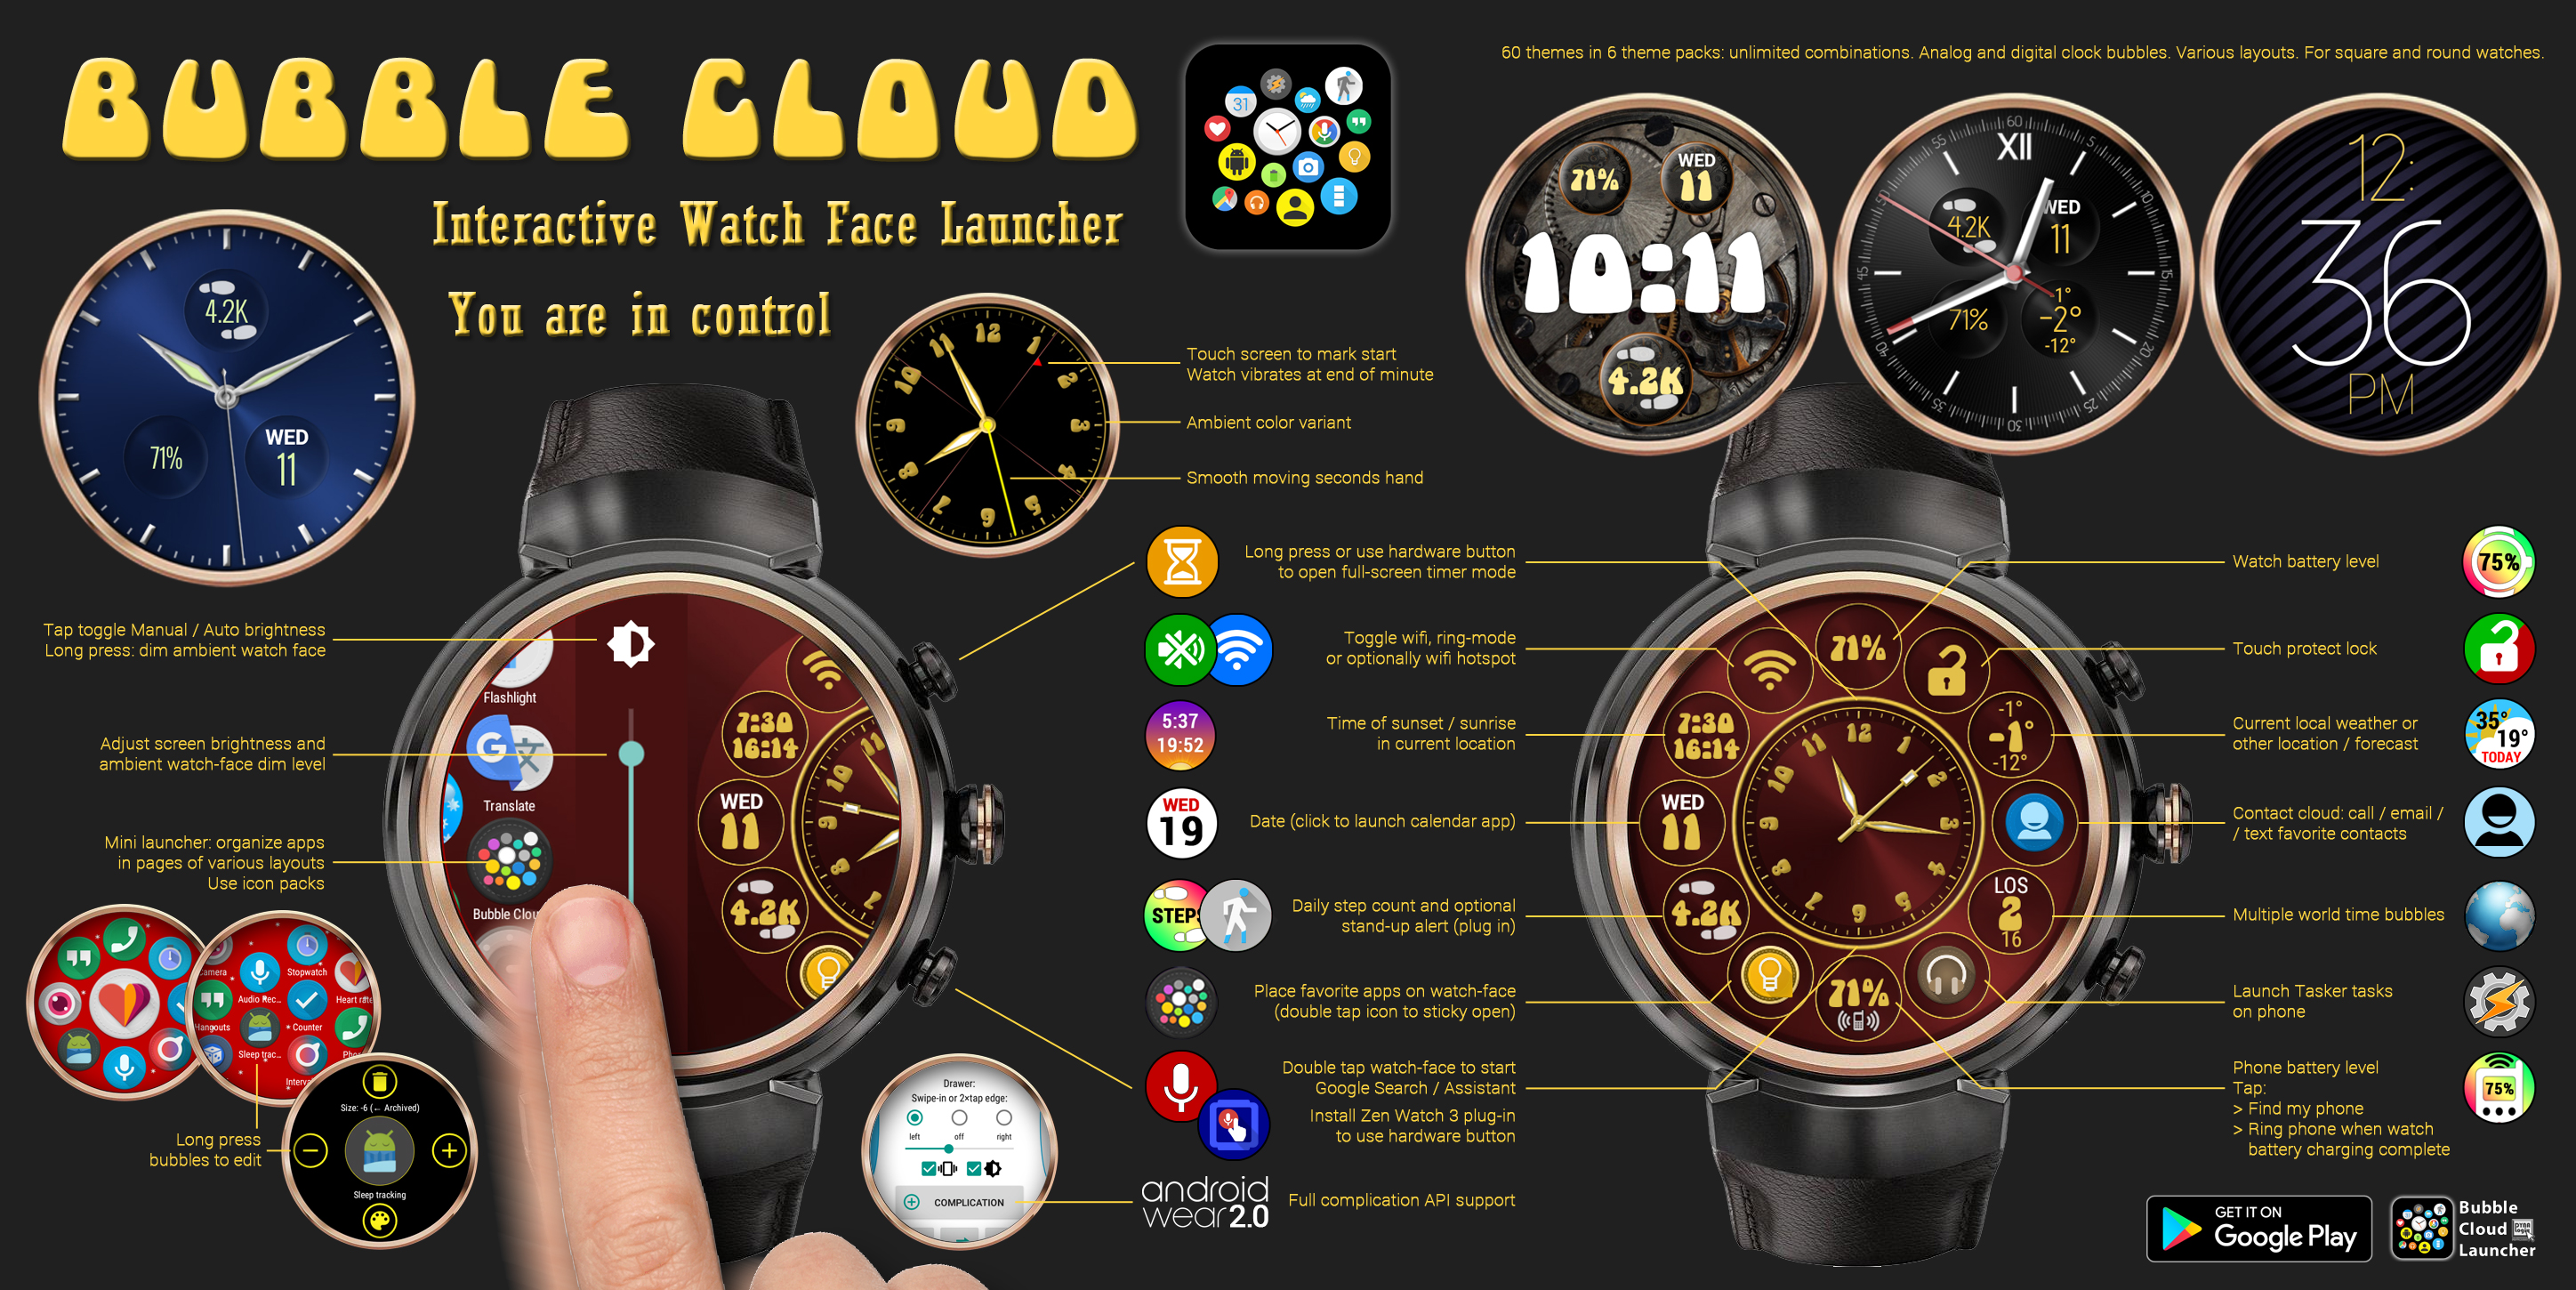 Bubble Cloud Watch Face Launcher